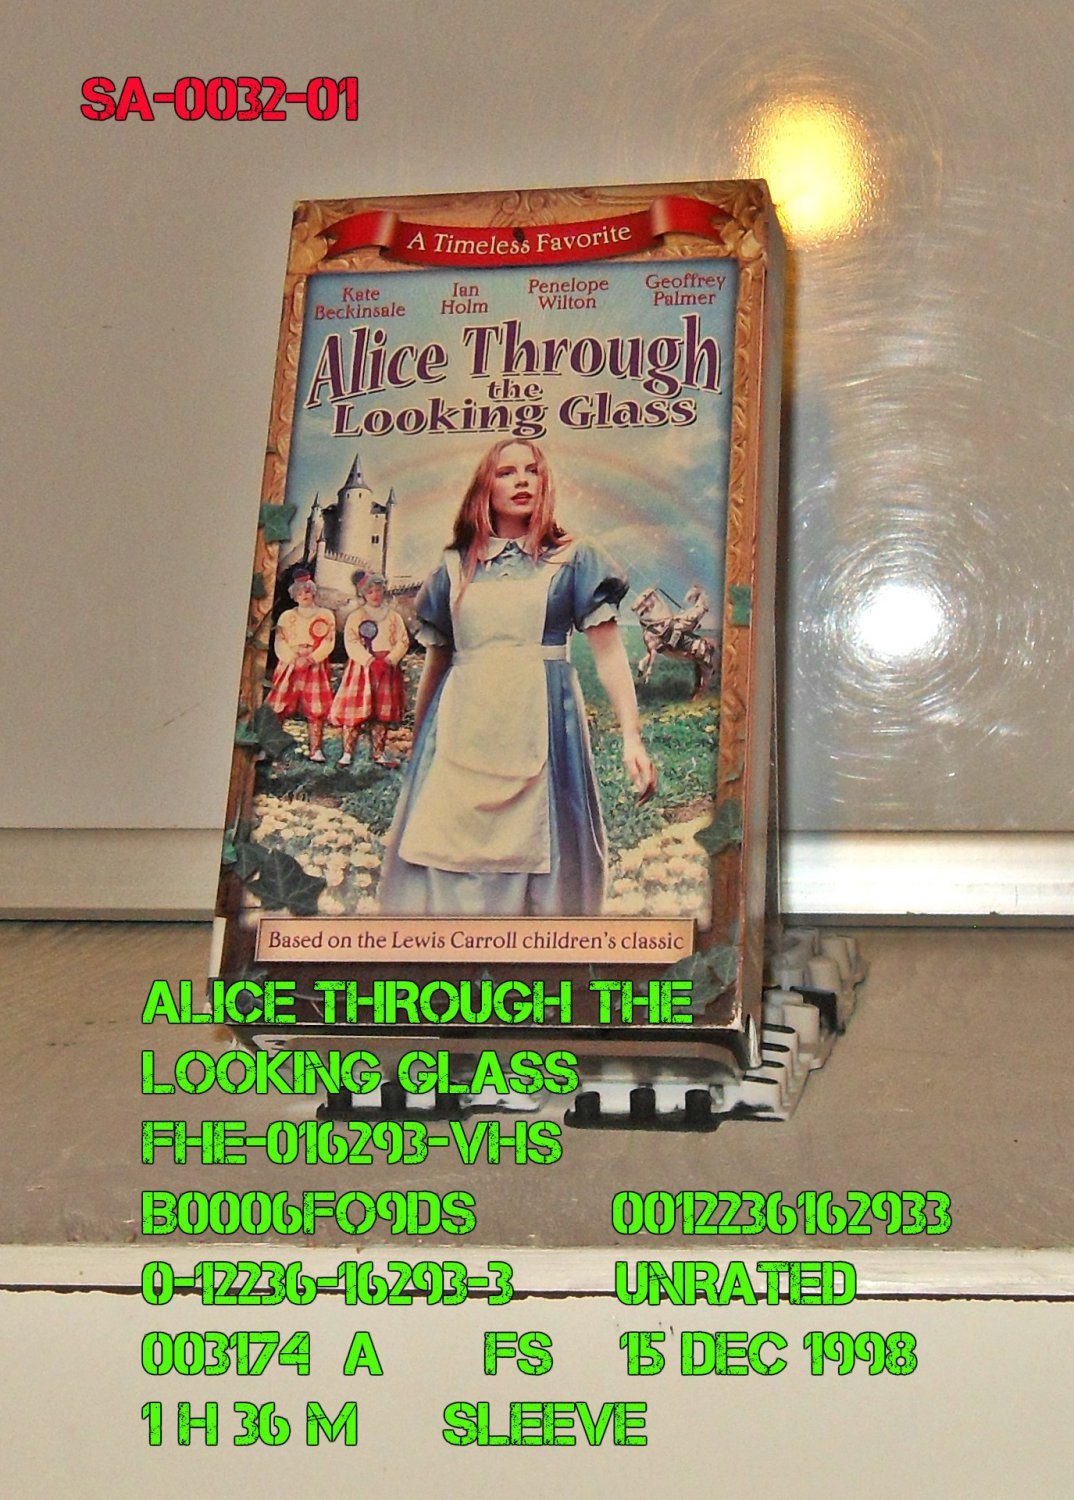 VHS - ALICE THROUGH THE LOOKING GLASS